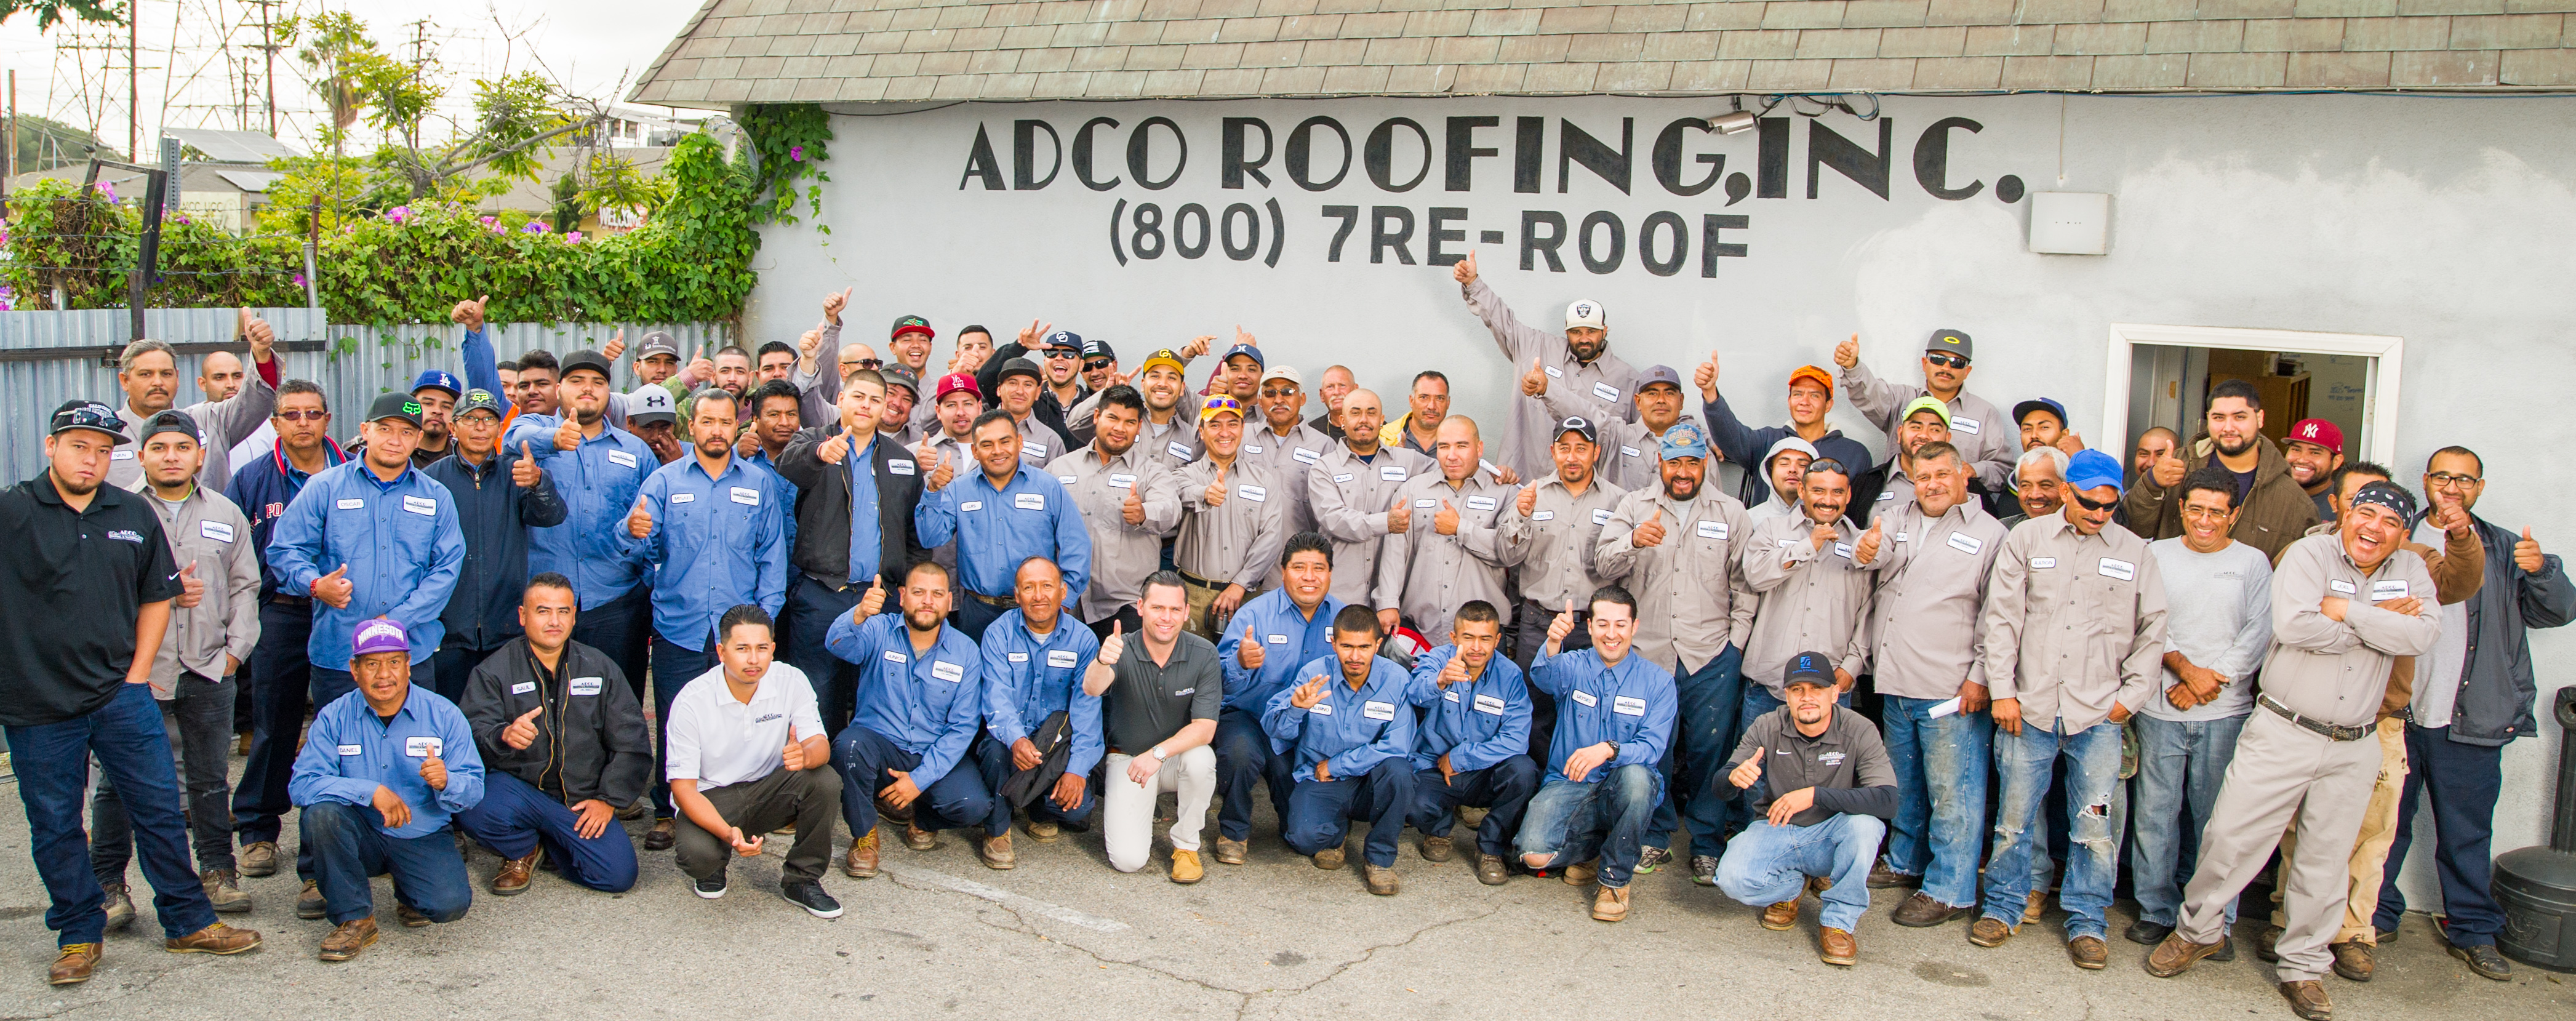 About ADCO Roofing And Waterproofing